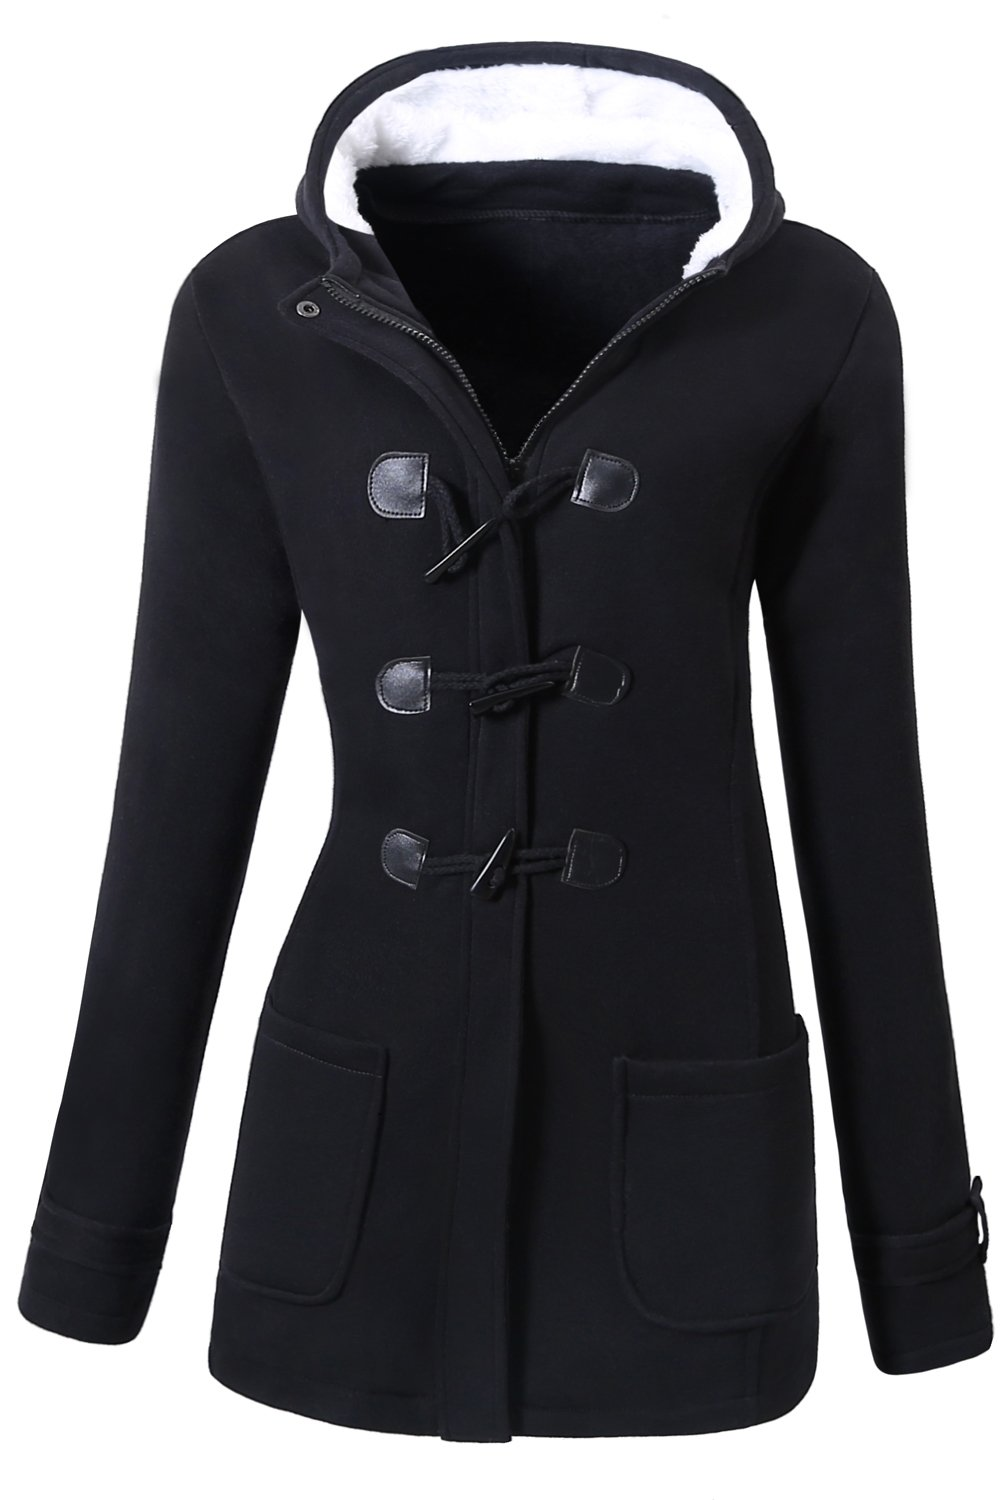 VOGRYE Womens Winter Fashion Outdoor Warm Wool Blended Classic Pea Coat Jacket Black Medium